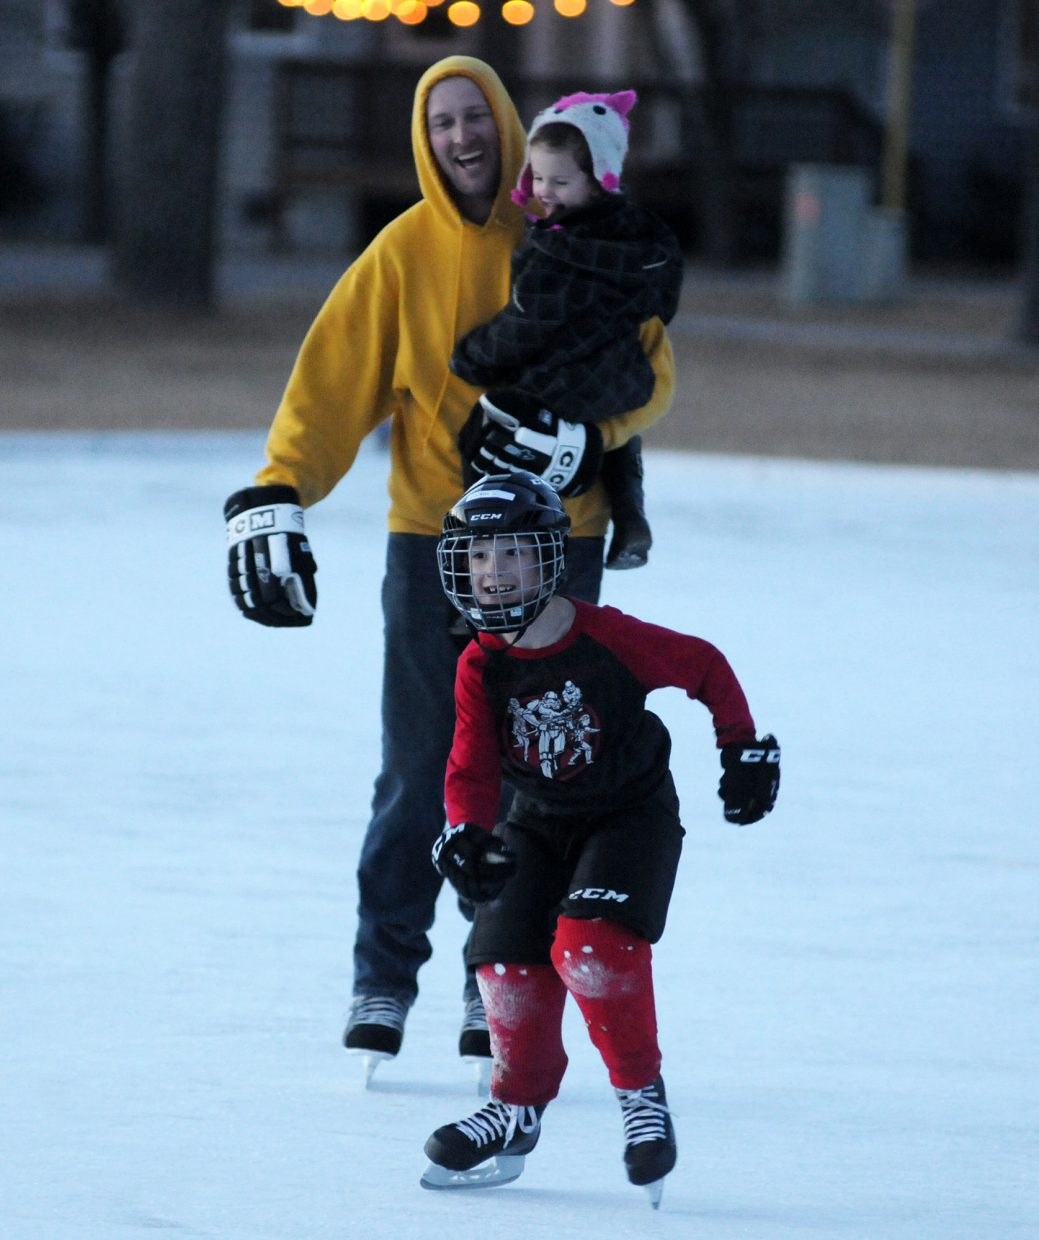 Eagle Ice Rink 1 KA 1-17-18 Kristin Anderson Eagle resident Jim Swanson holds his daughter Piper, 3, while skating with his son Calvin, 8, Wednesday at the Eagle Town Park Ice Rink.